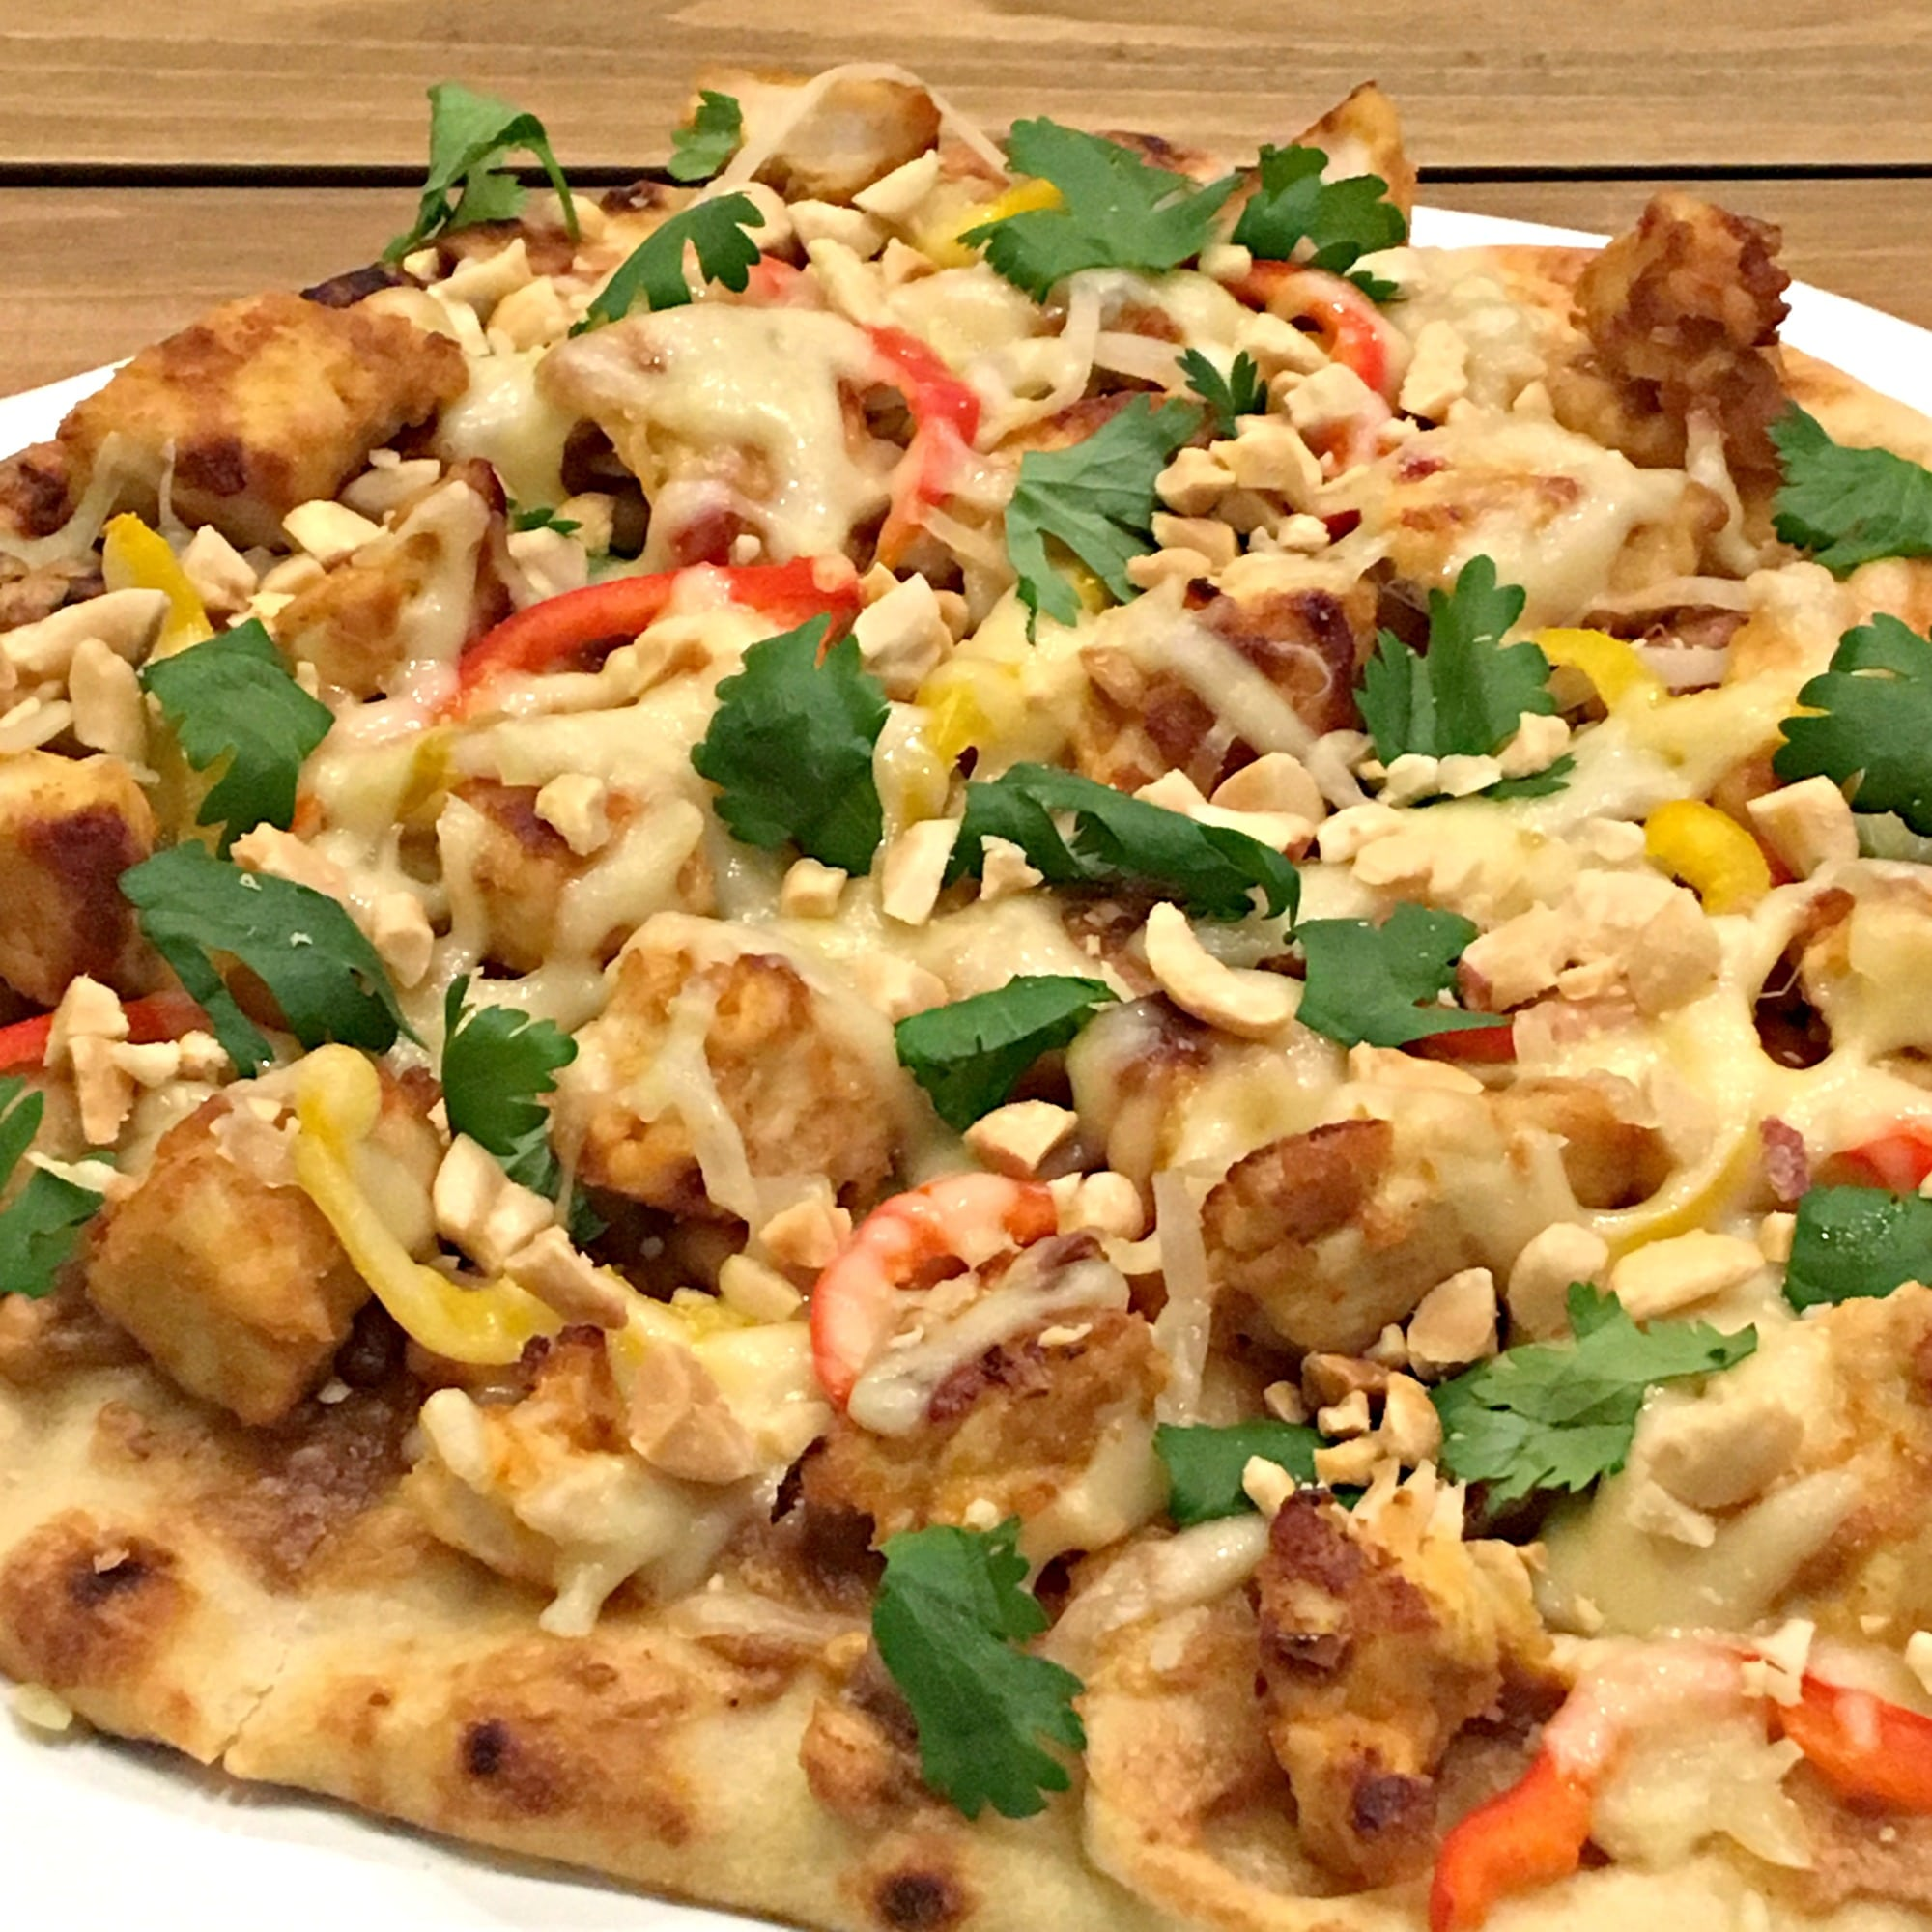 A flatbread topped with chicken, cheese, peanut sauce and cilantro